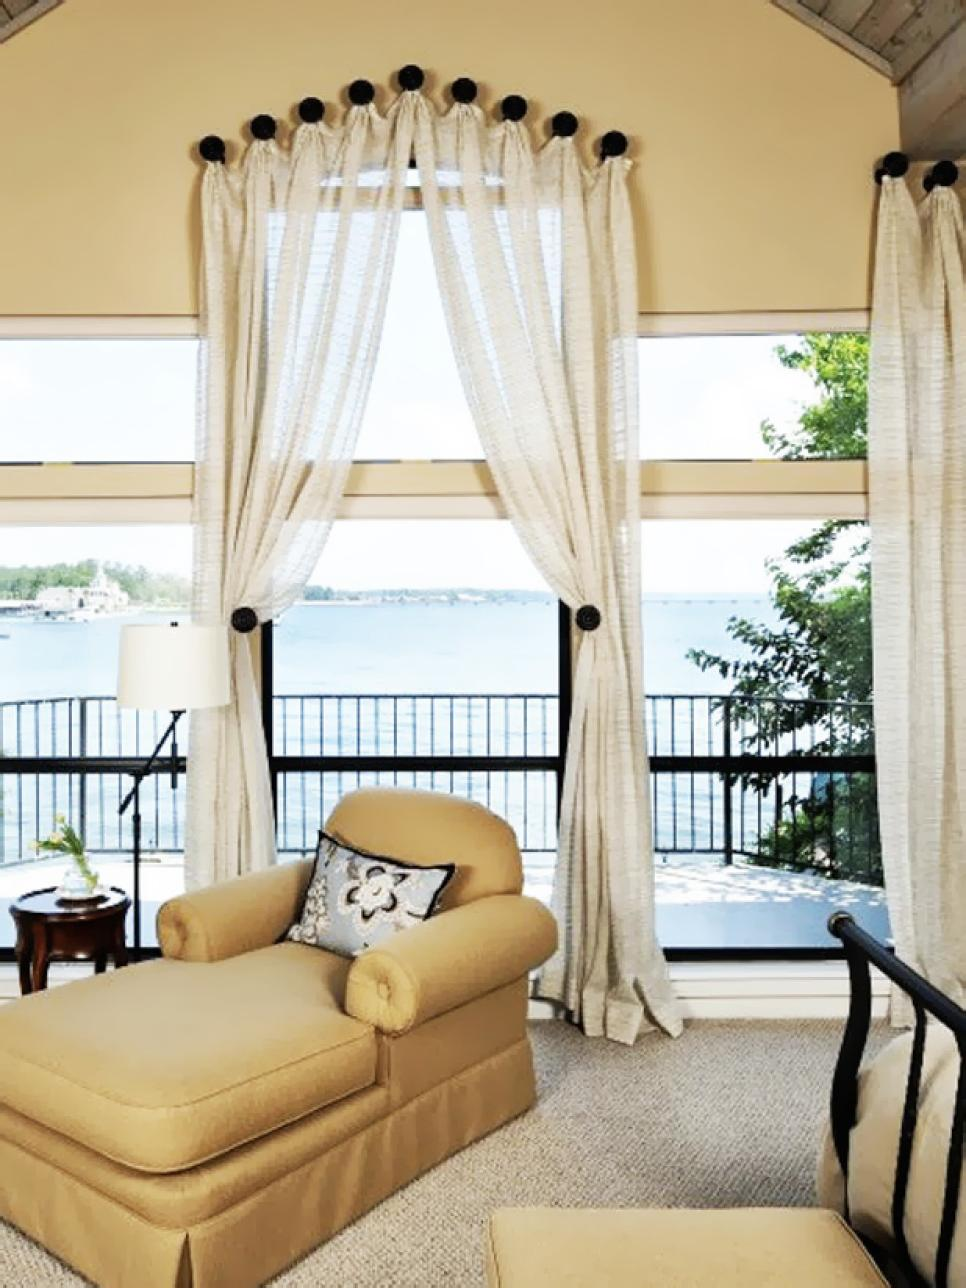 Most window treatments are hung by way of rod or track allowing them to  easily open and close to conDvorscak trol lighting and privacy. Dreamy Bedroom Window Treatment Ideas